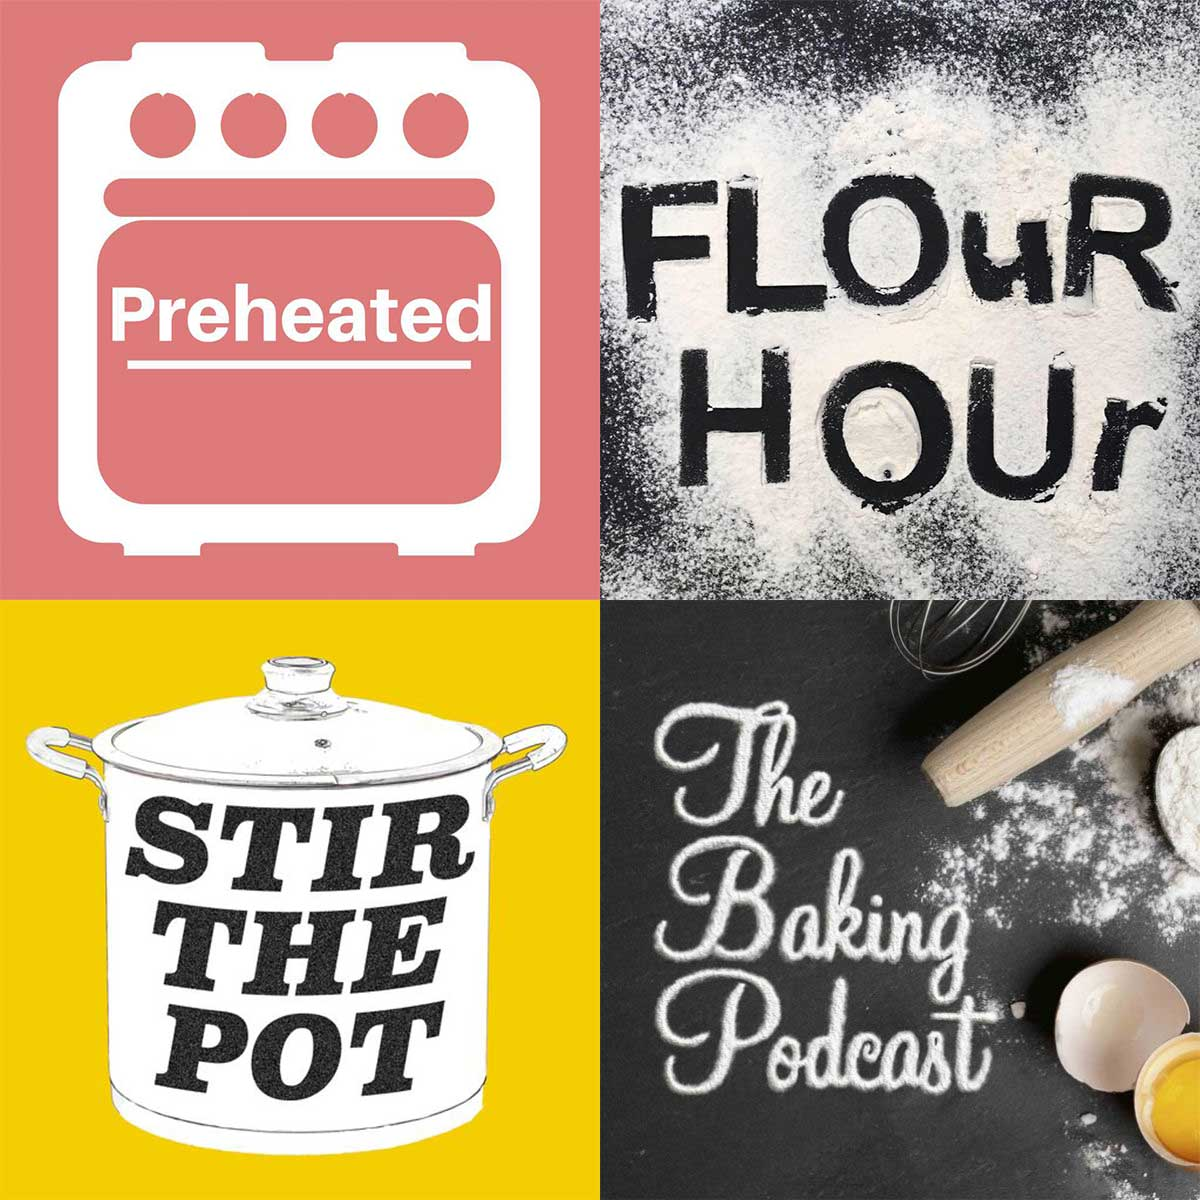 Logos for four baking podcasts: Preheated, Flour Hour, Stir The Pot, The Baking Podcast